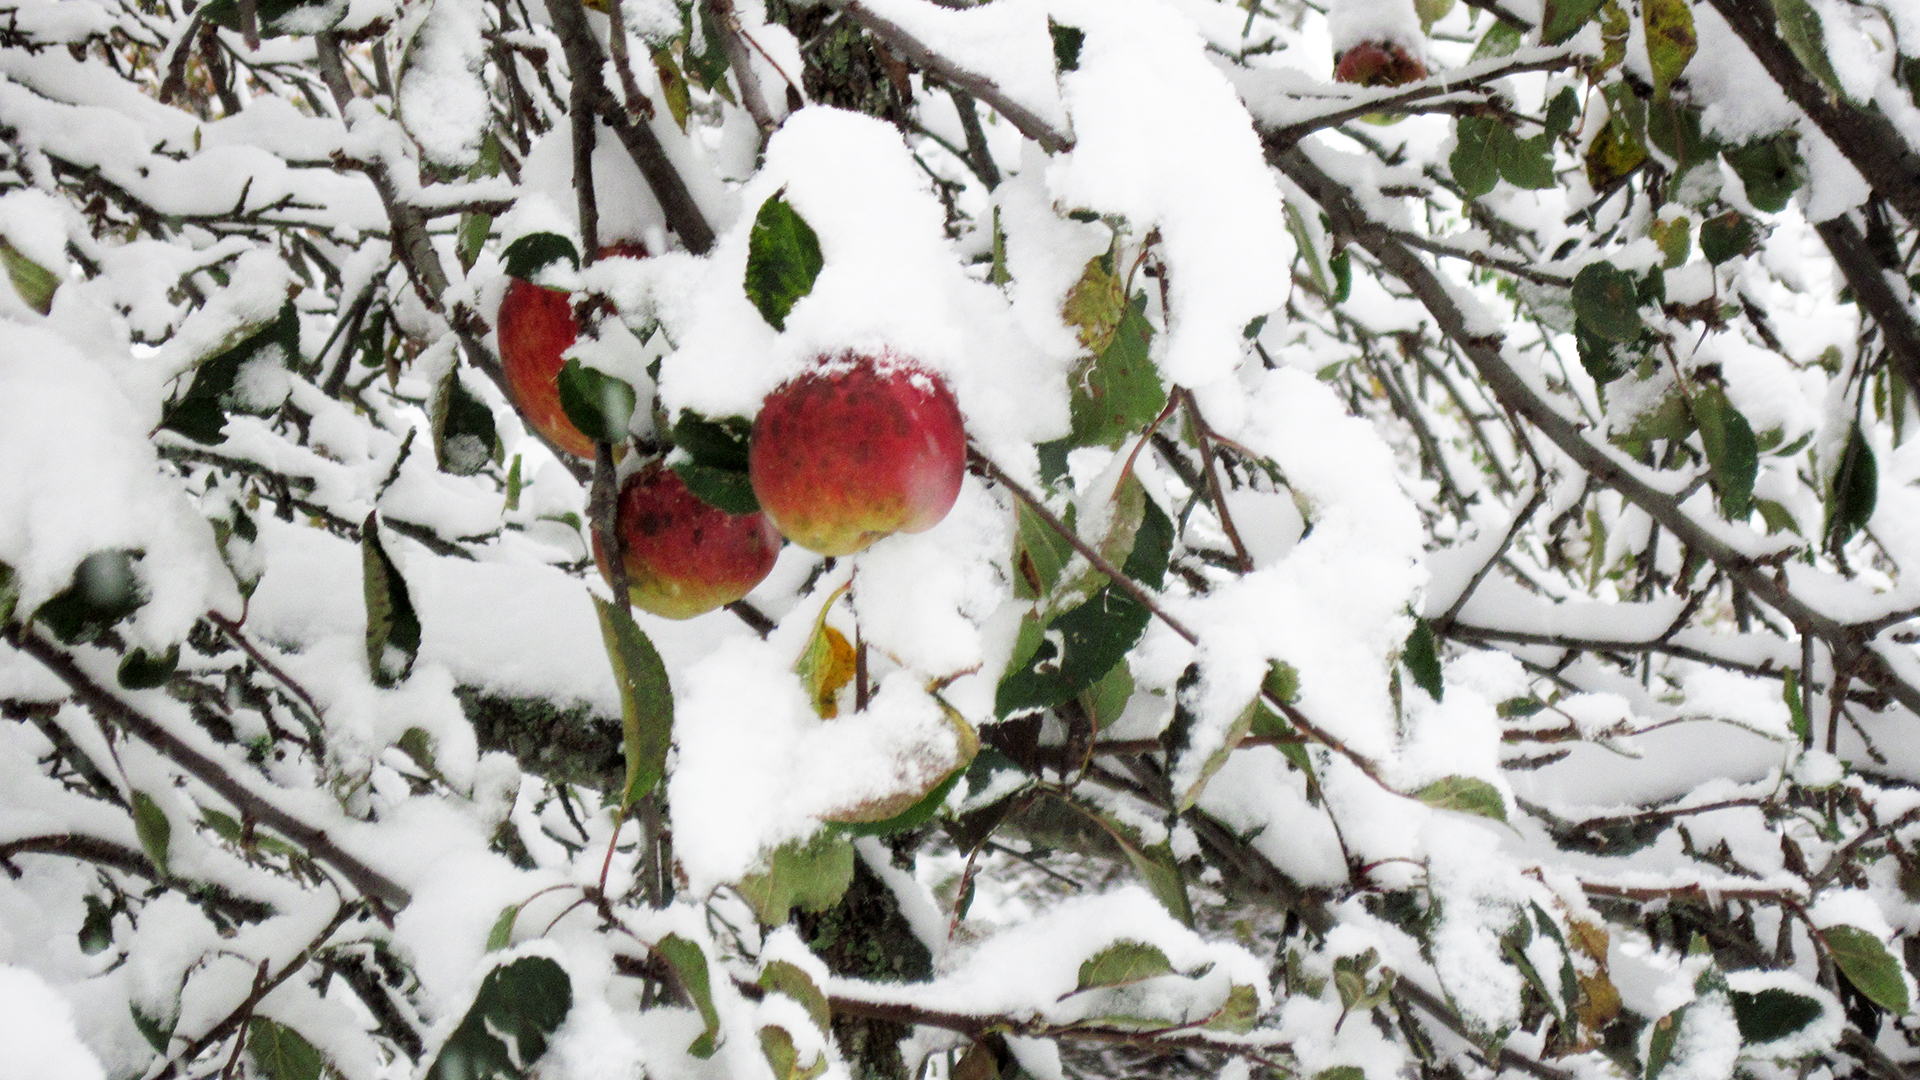 Apples after snowfall - Full width Image